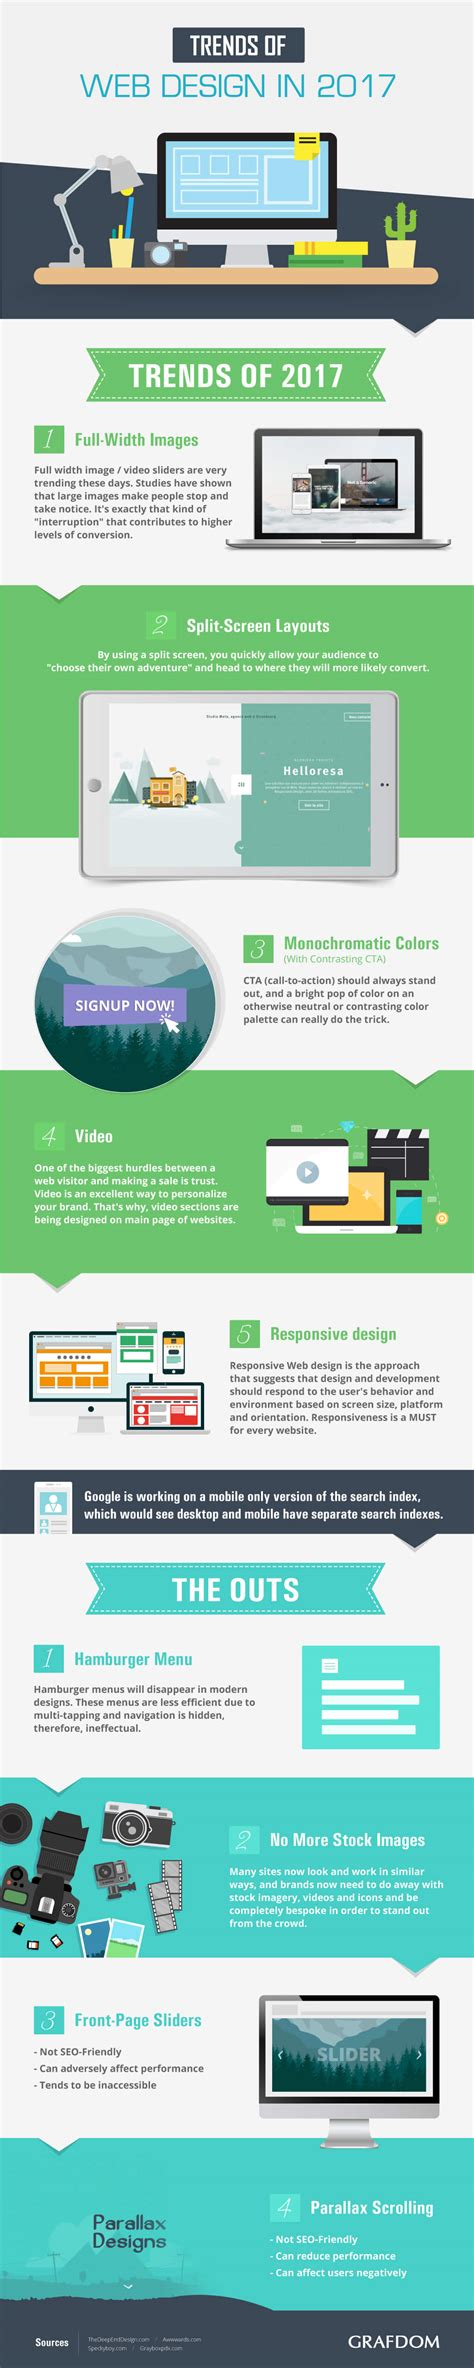 new web design trends 2017 2017 website design trends infographic